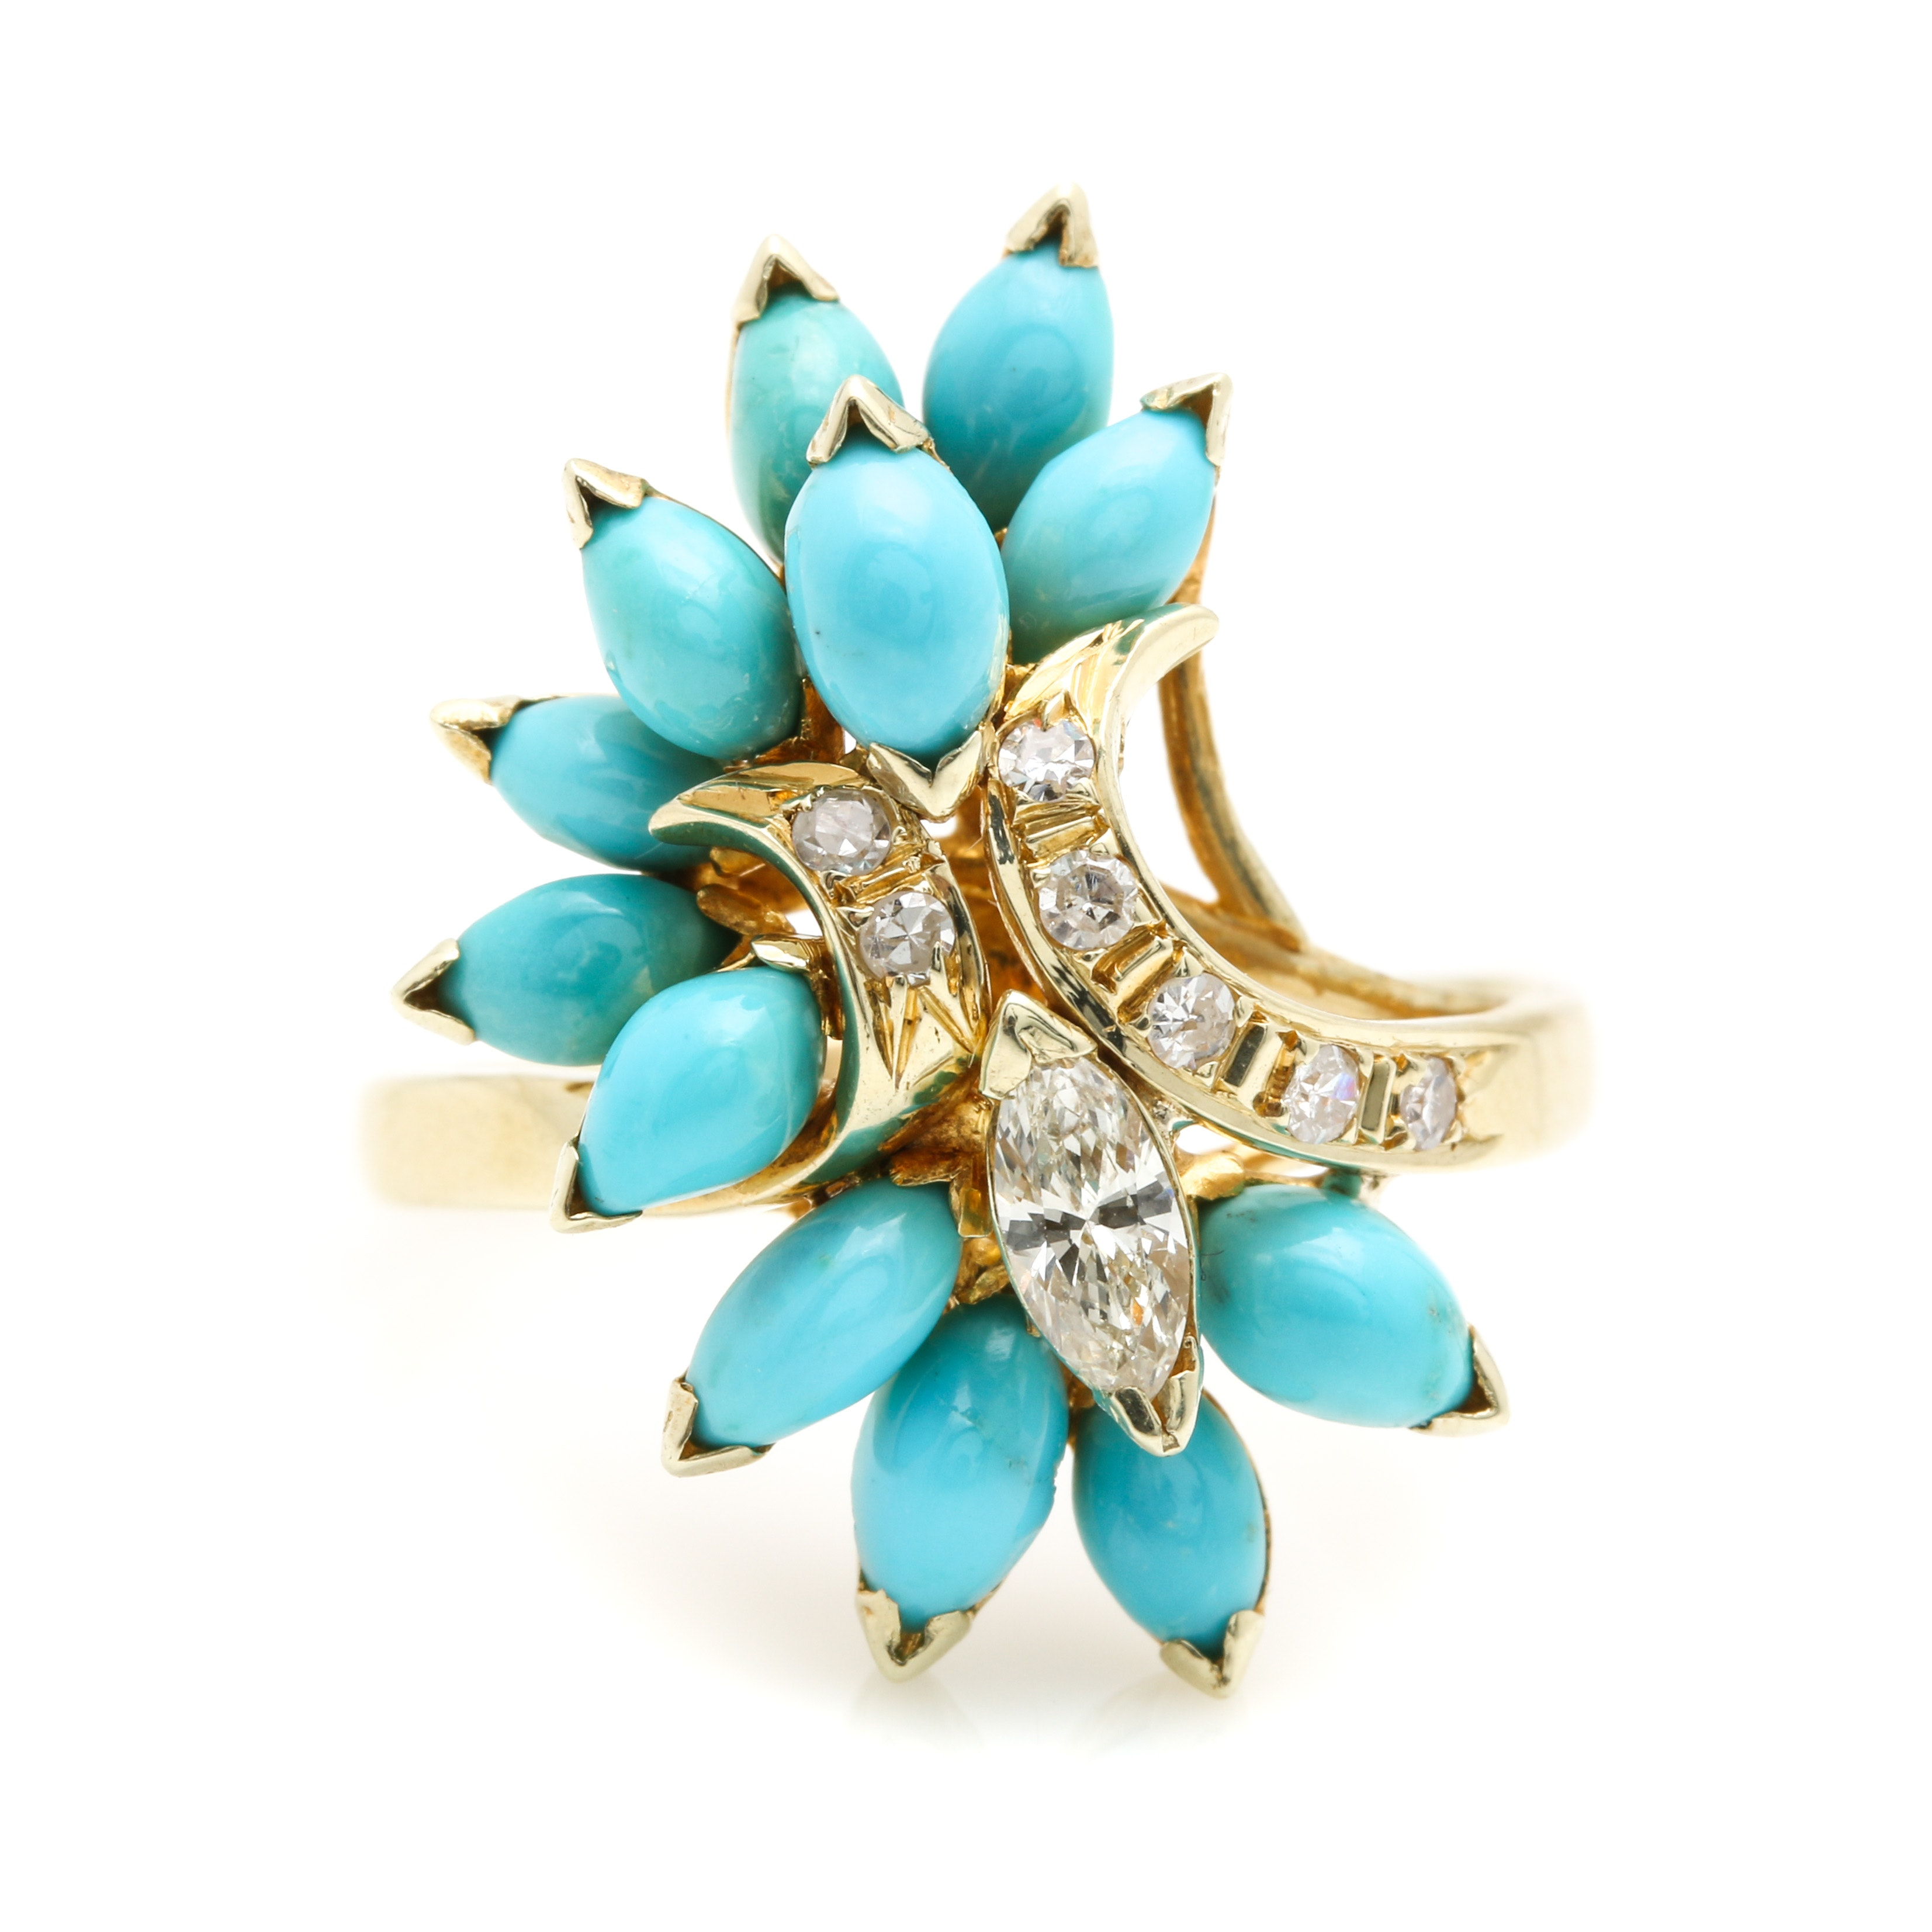 14K Yellow Gold Diamond and Turquoise Cluster Ring